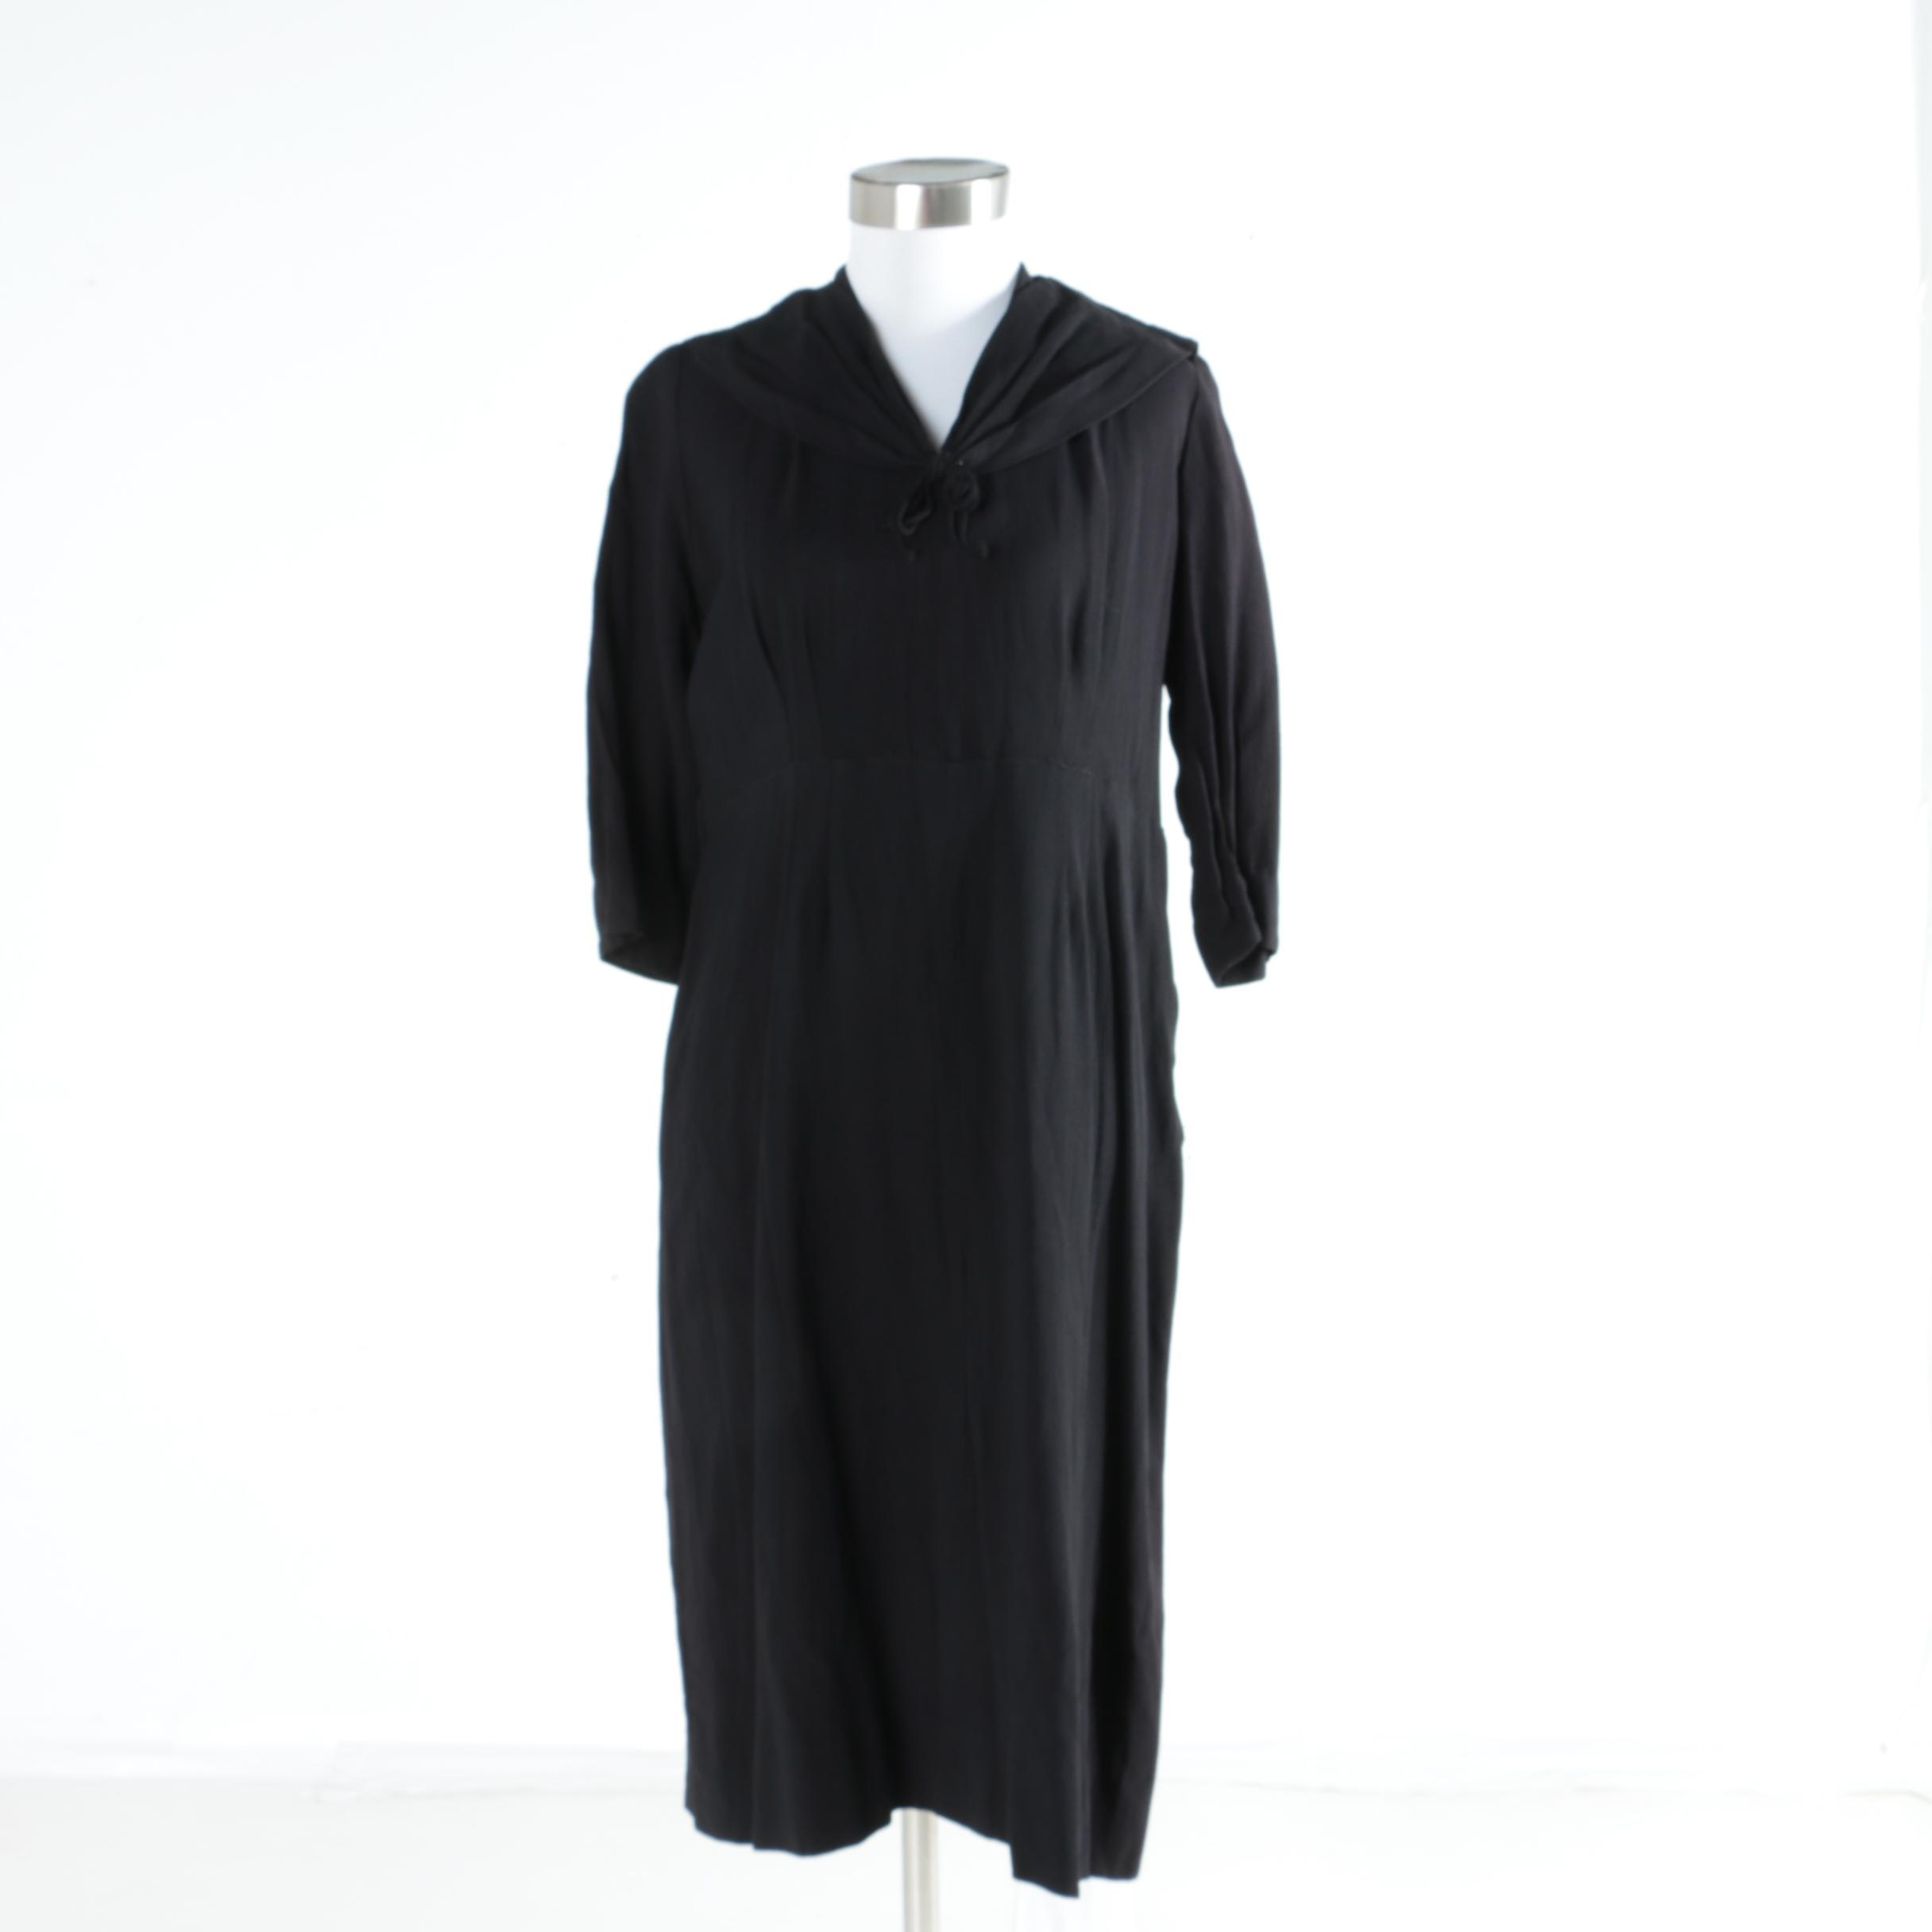 Women's Vintage Black Dress